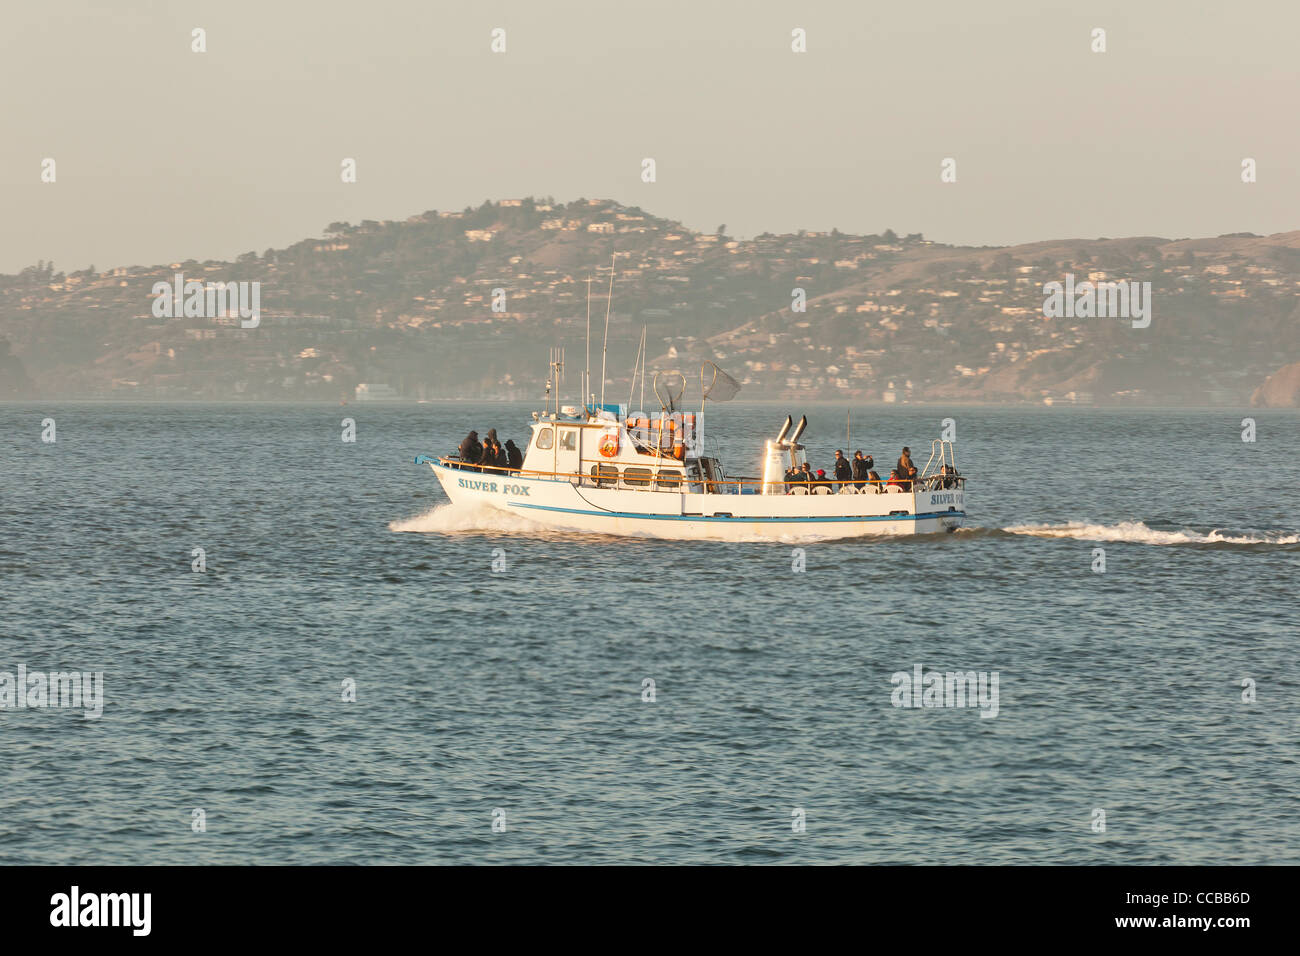 A charter fishing boat leaving for deep water - Stock Image